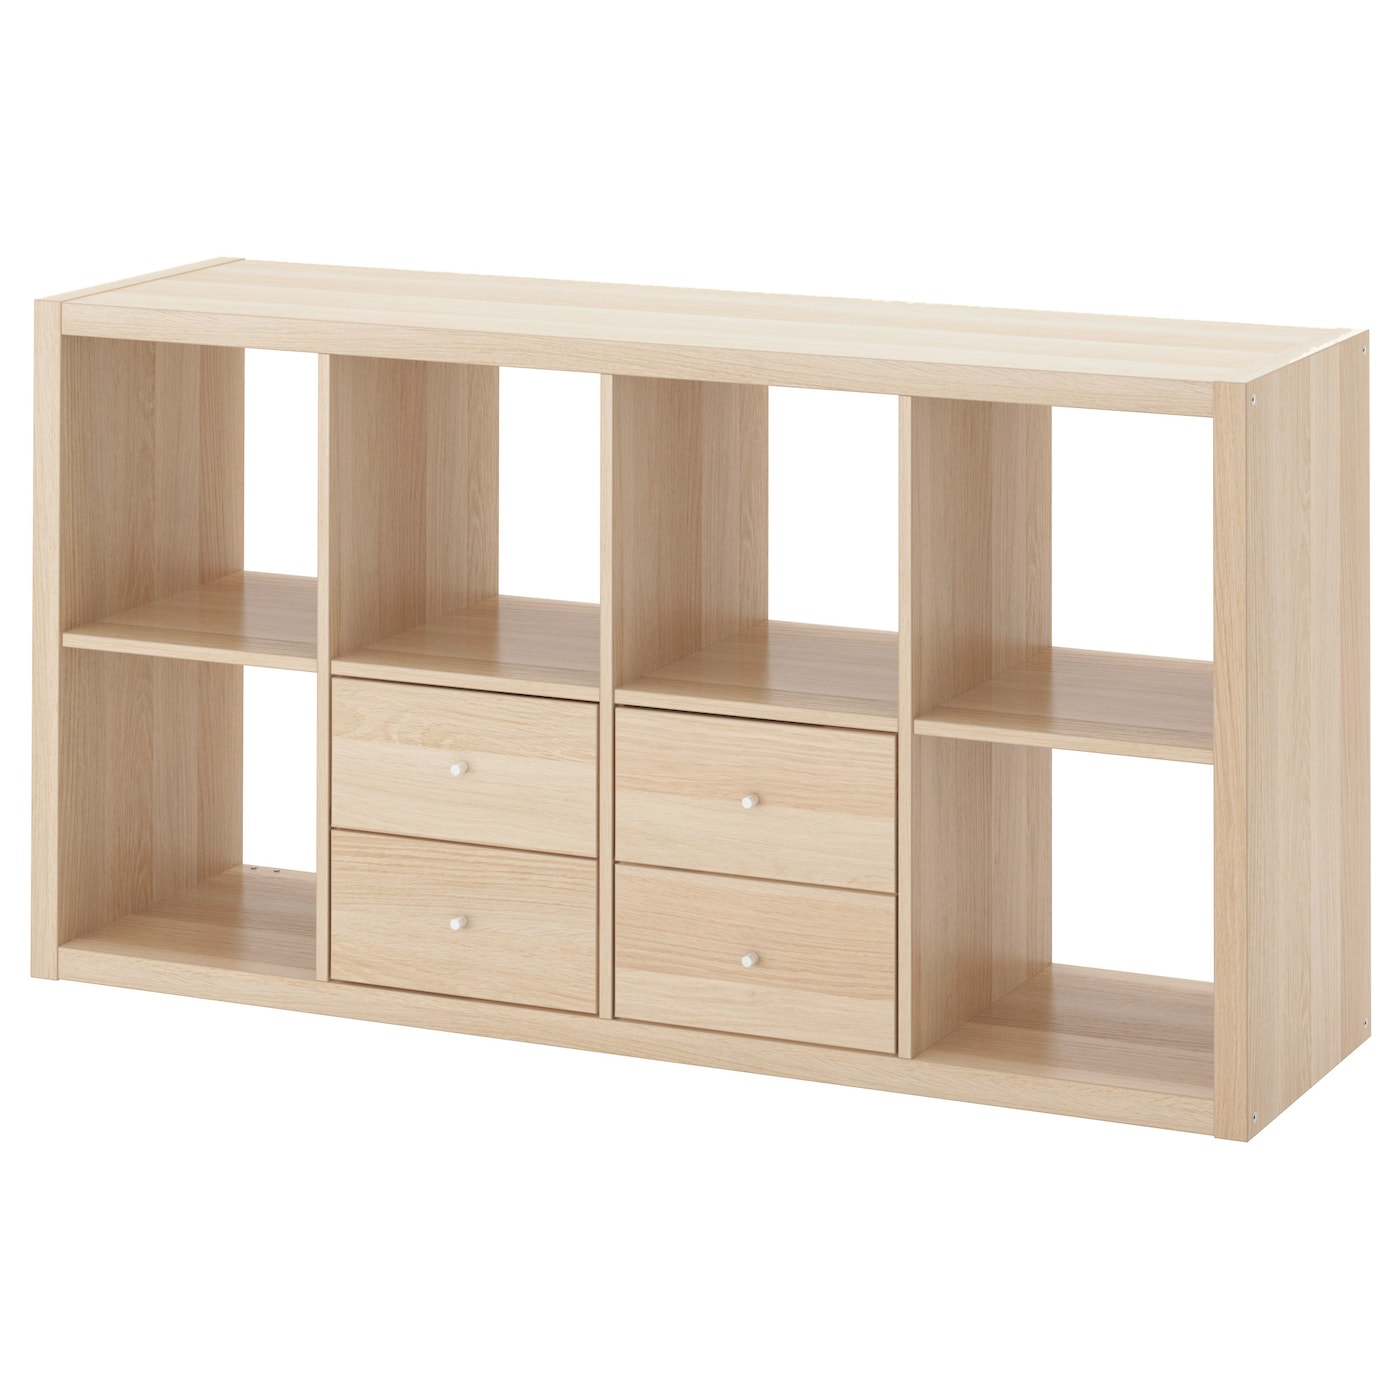 kallax shelving unit with 2 inserts white stained oak effect 147x77 cm ikea. Black Bedroom Furniture Sets. Home Design Ideas